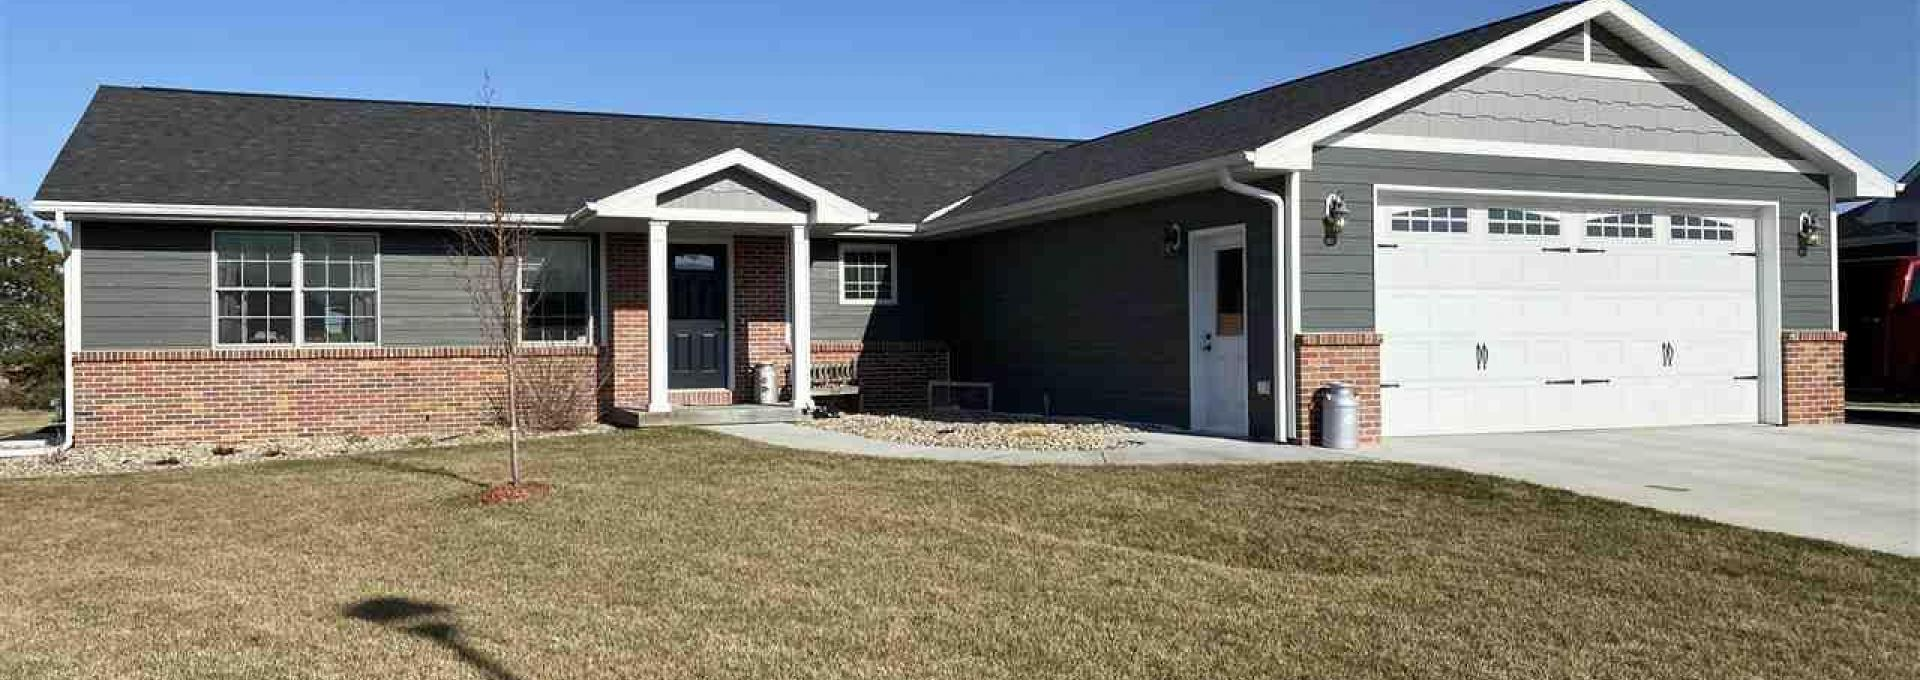 A new ranch home with a gray siding/brick exterior is pictured for sale near the Fillmore Central Elementary School.